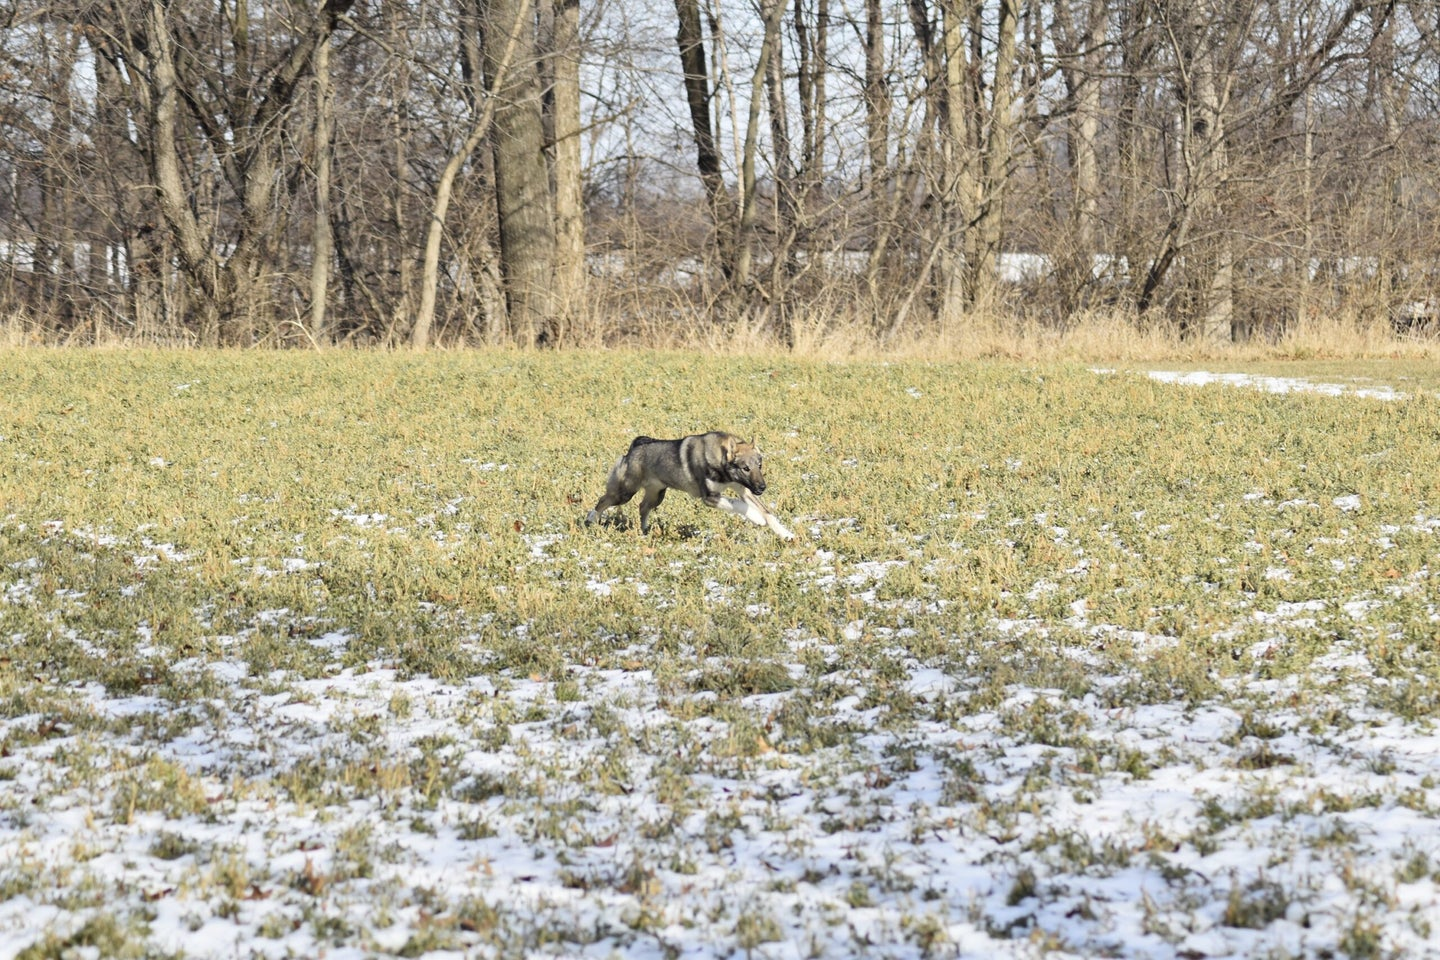 If you buy a high-drive gun dog you have to be prepared to train and car for it properly.